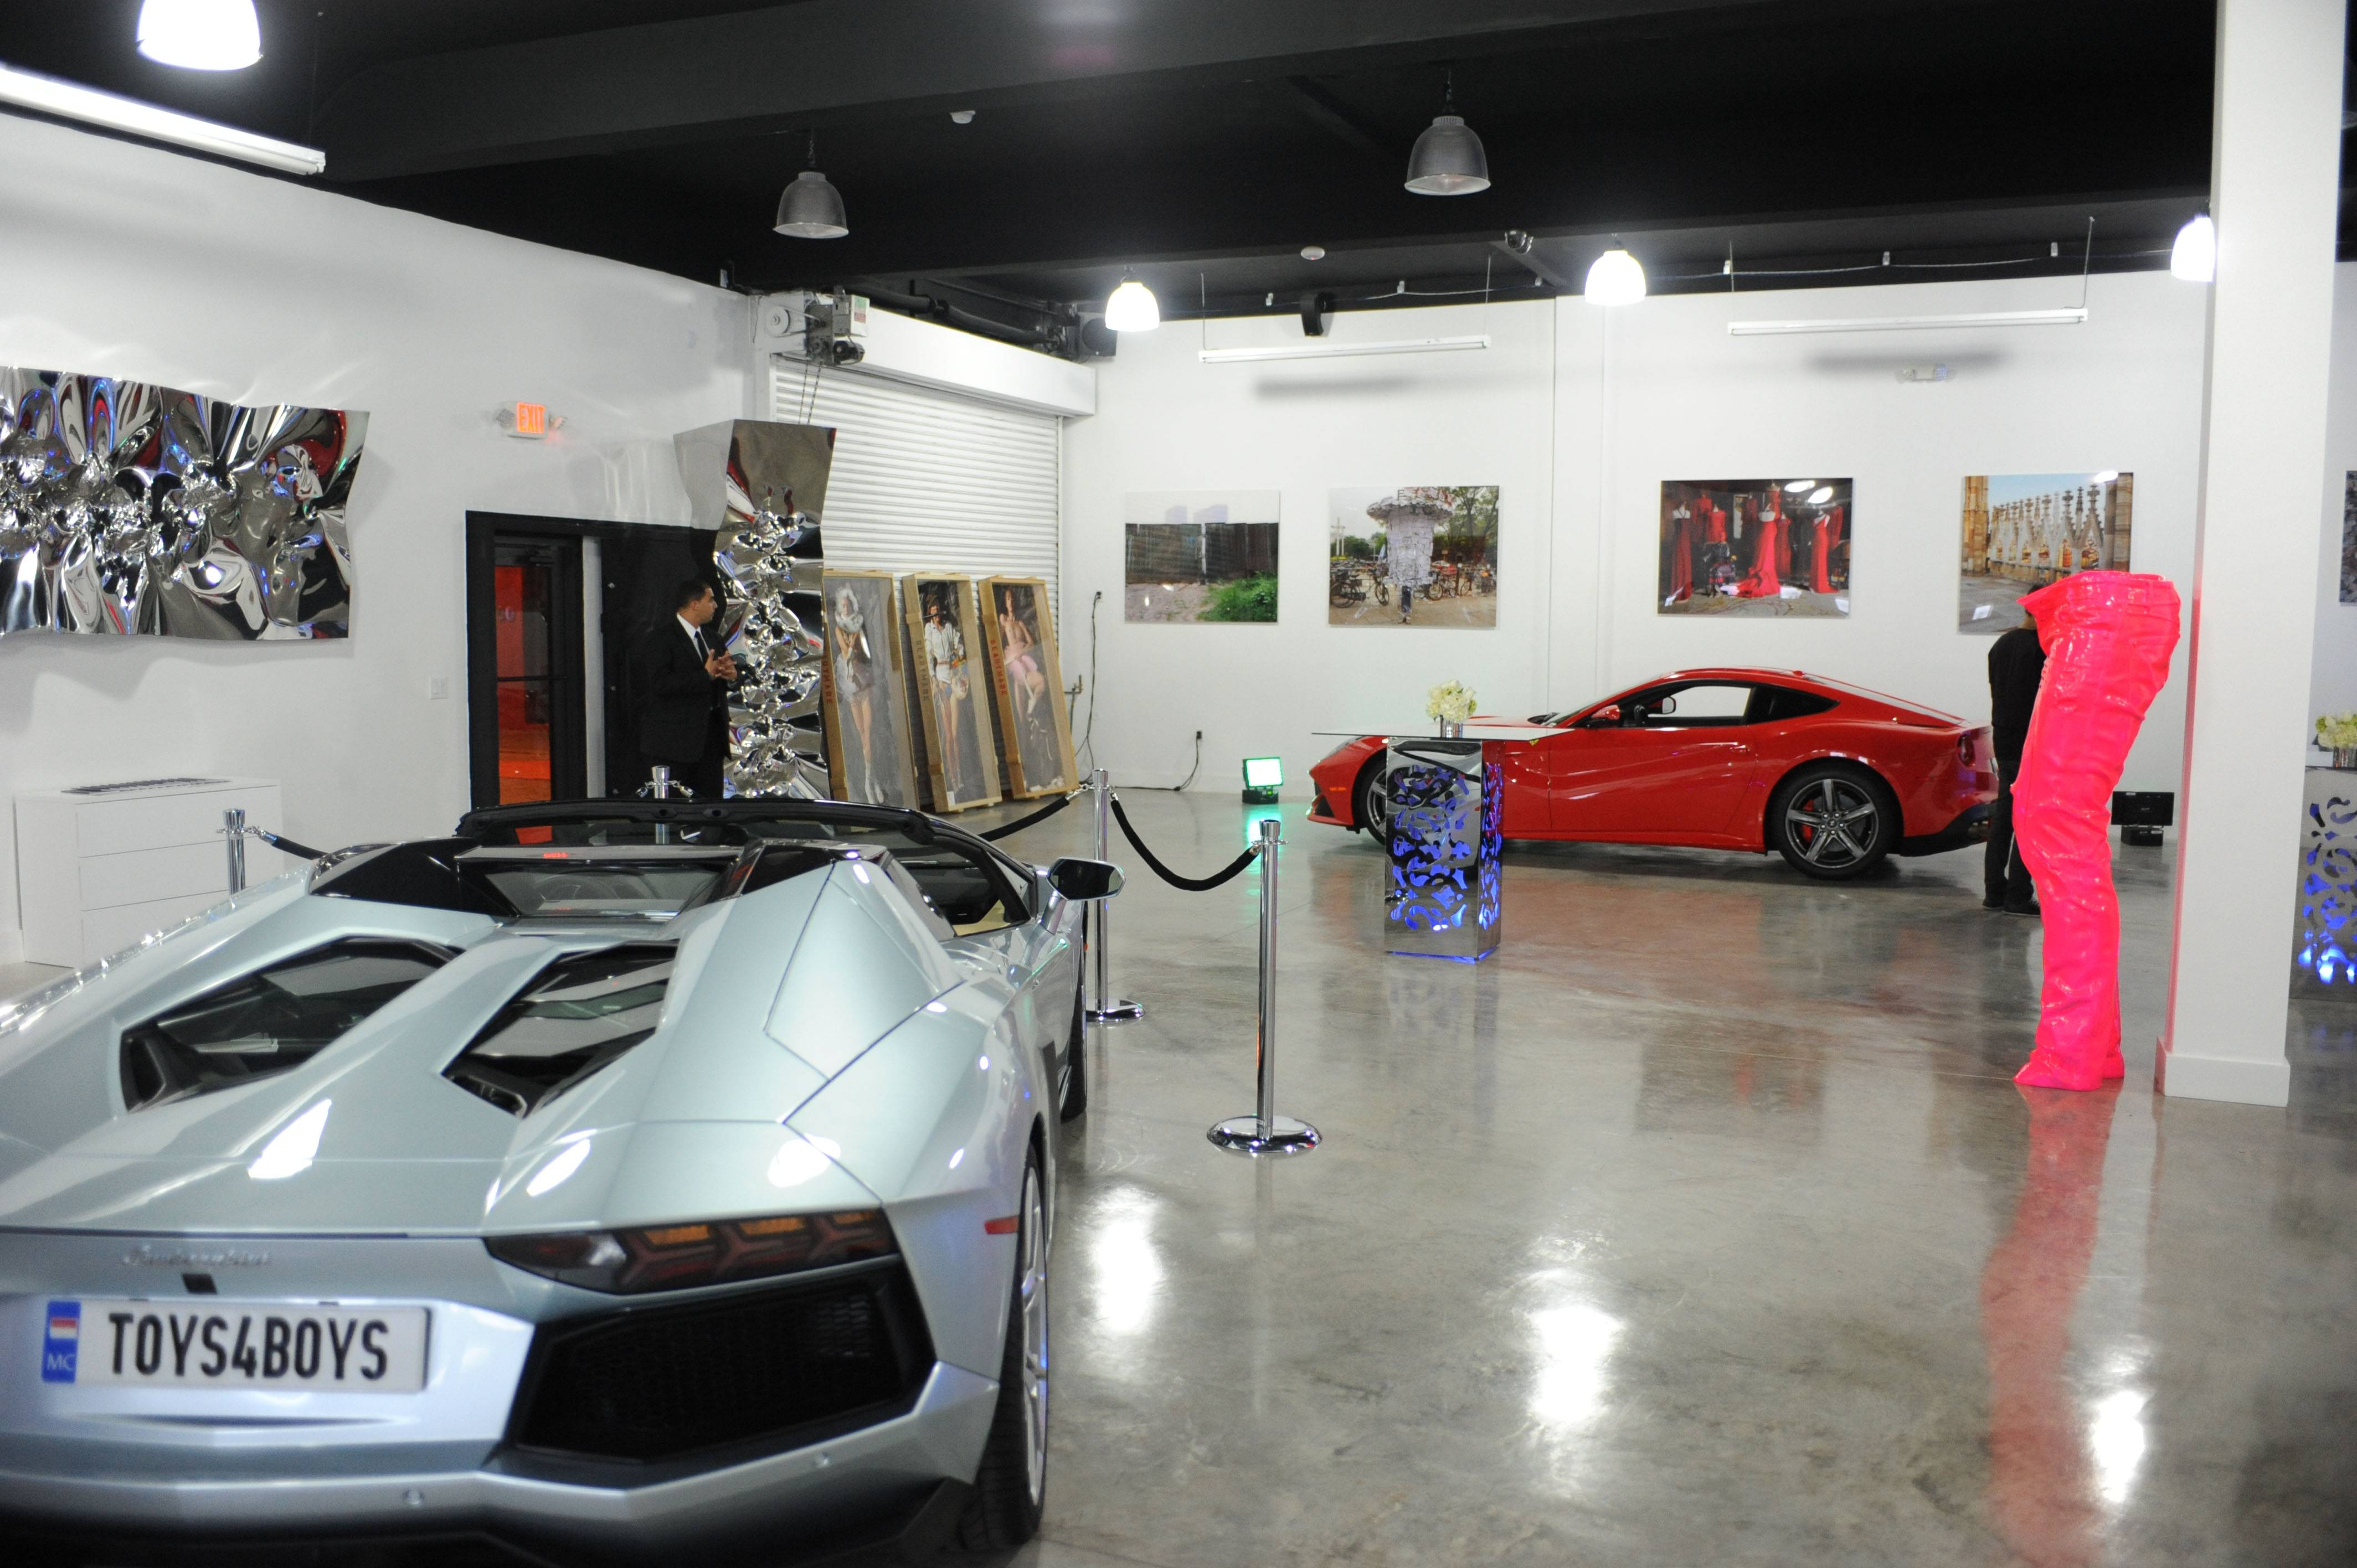 toys for boys opens luxury toybox in wynwood haute living. Black Bedroom Furniture Sets. Home Design Ideas